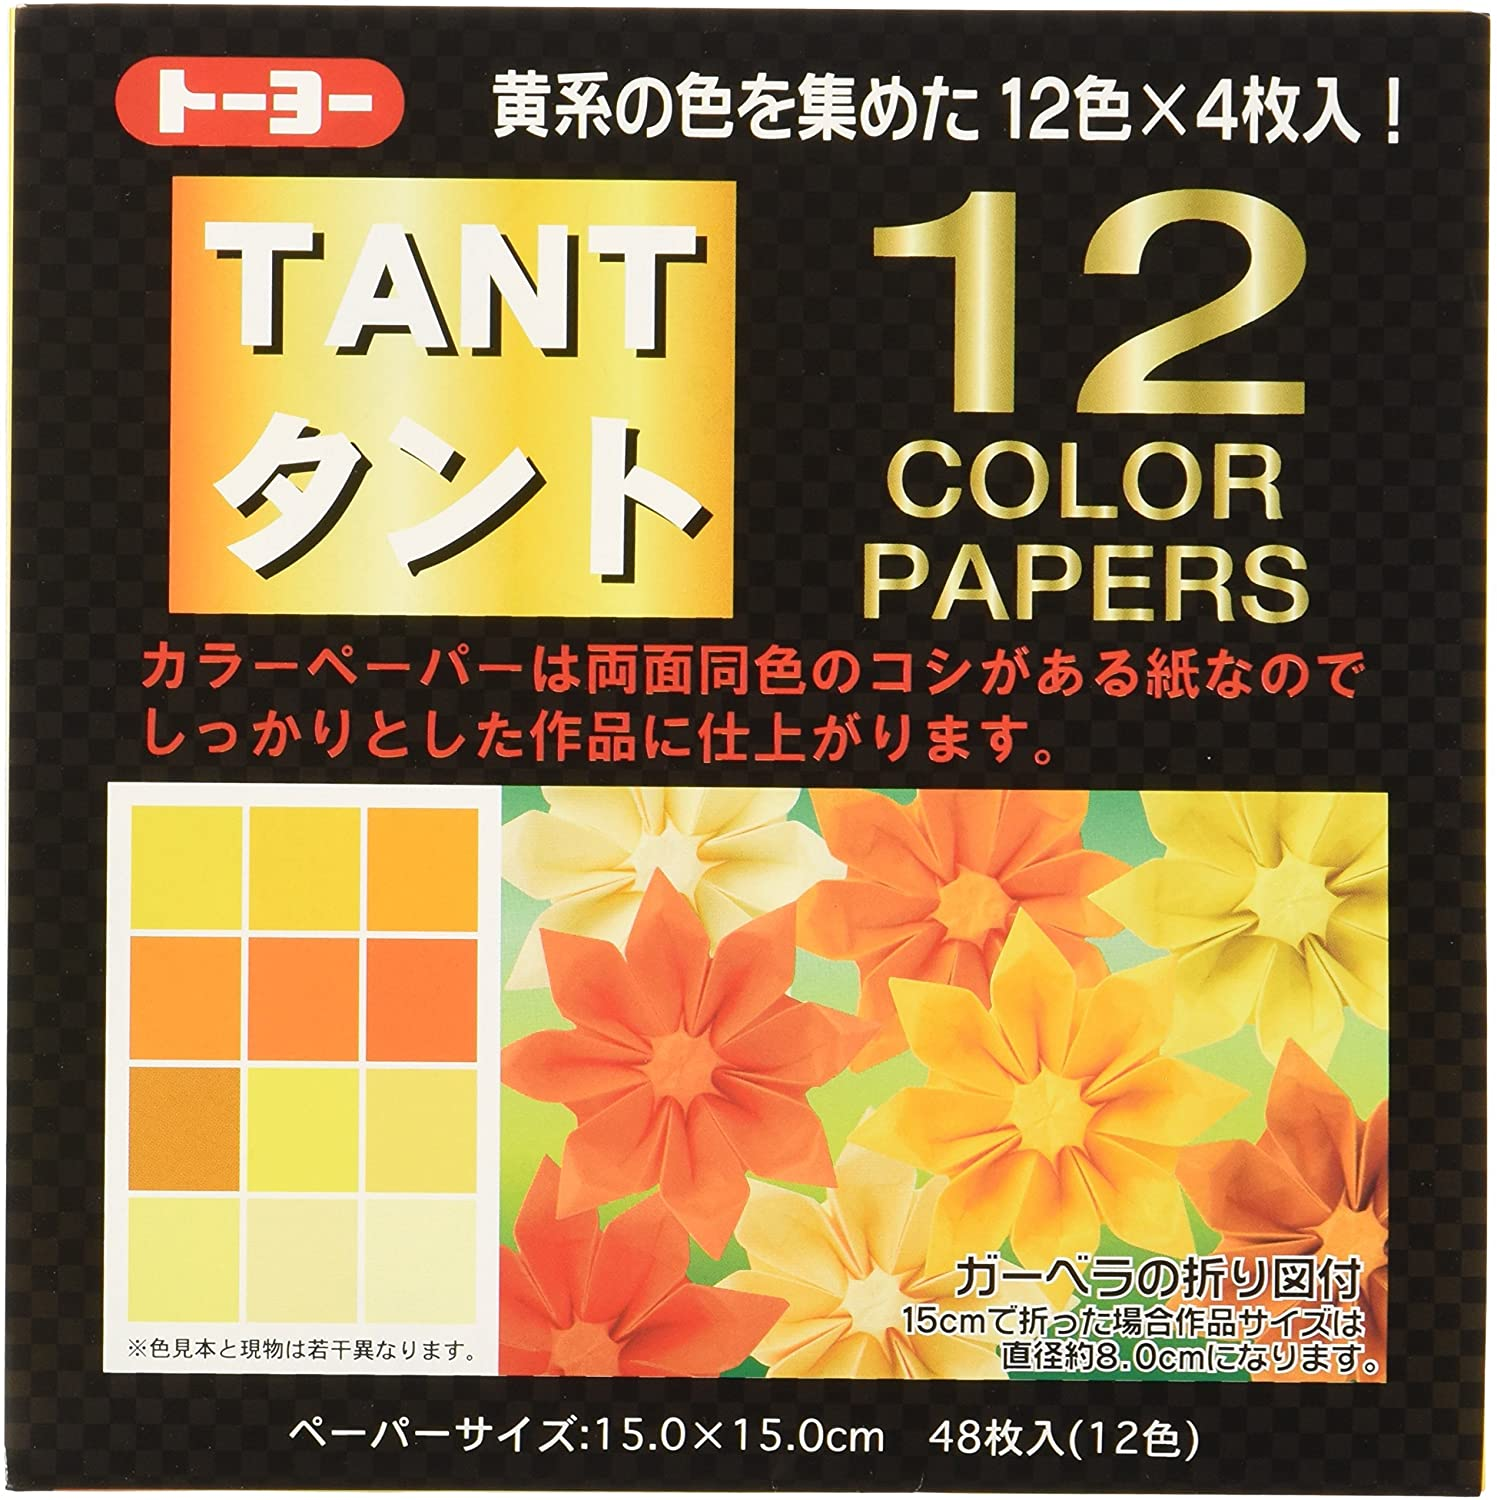 Toyo Origami Tant, 15 cm x 15 cm, Yellow, 12 Colors 4 Each